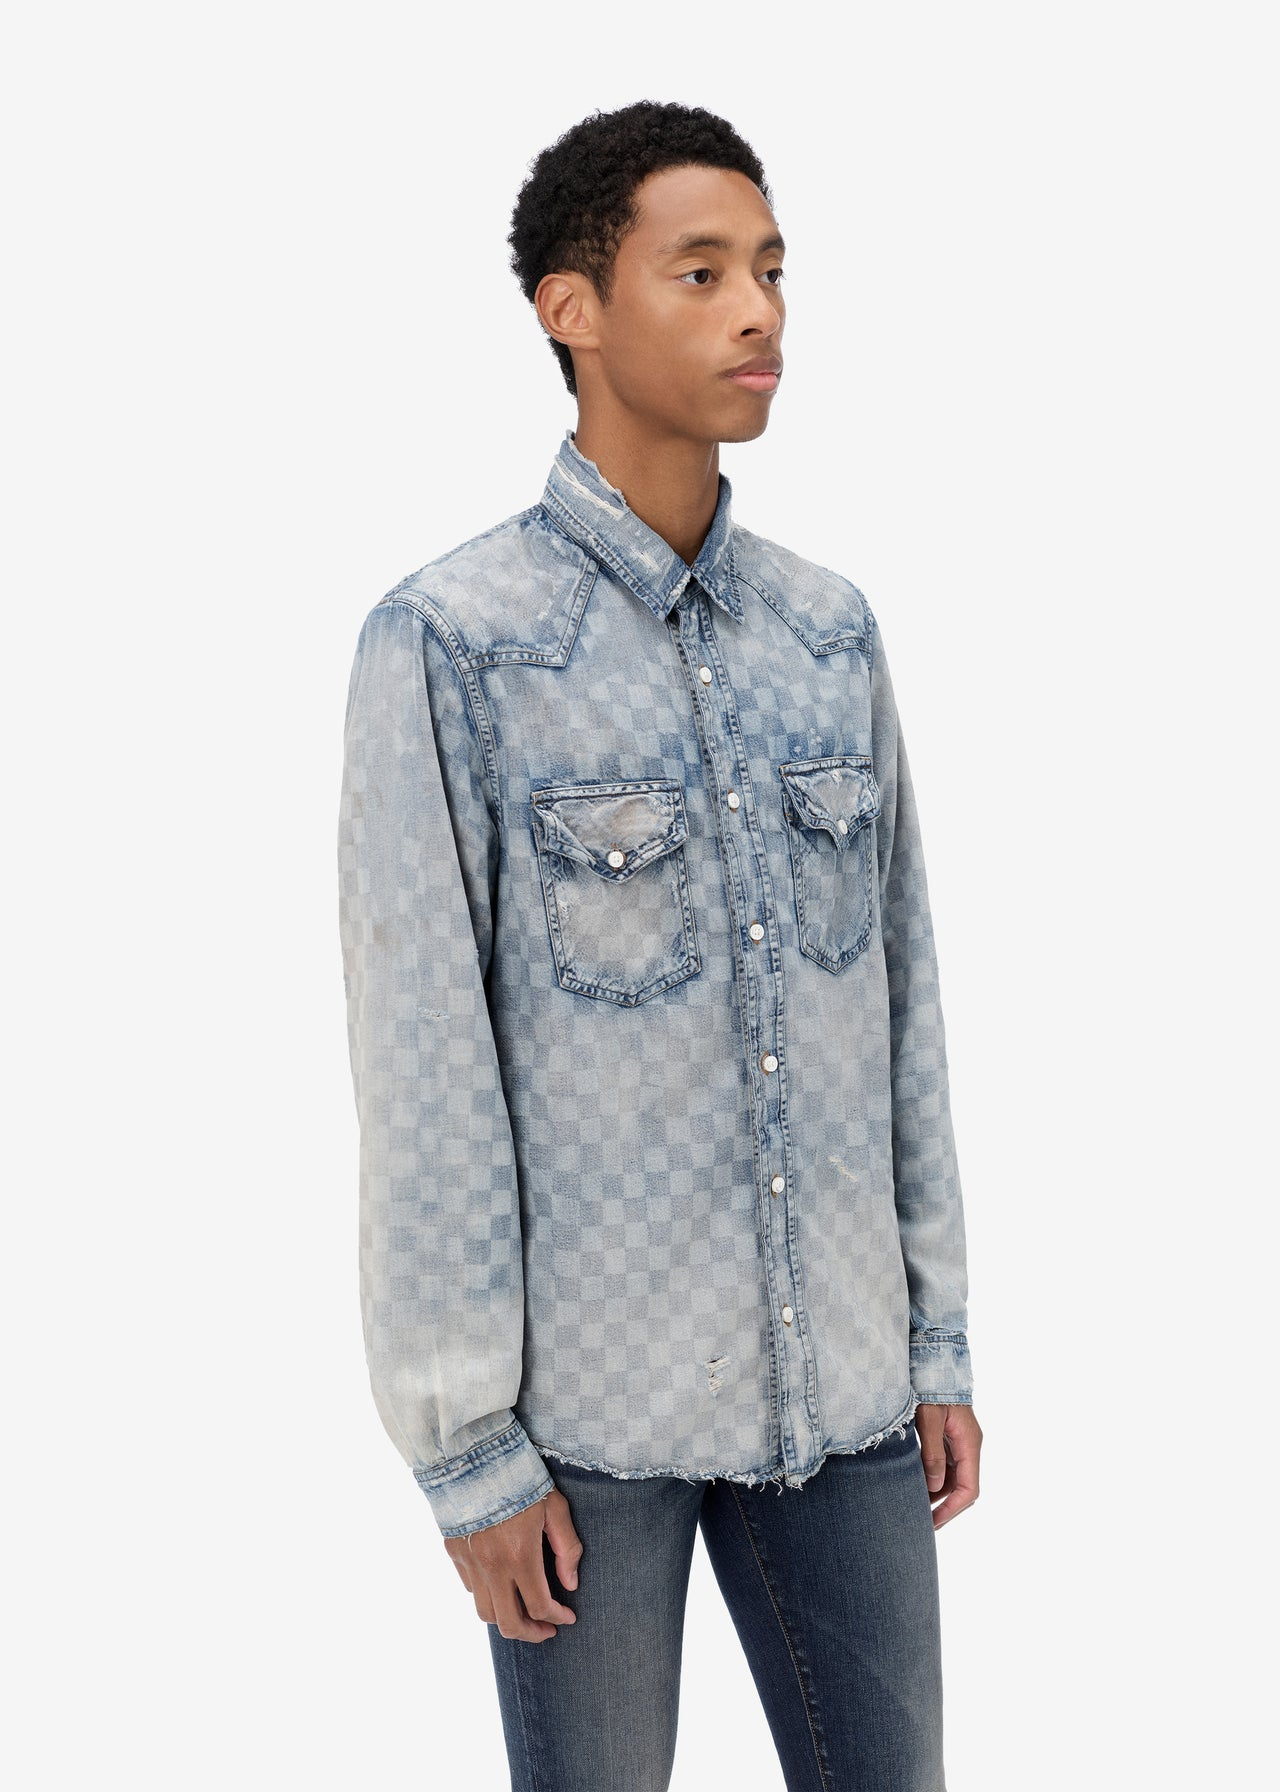 LASER CHECK SHIRT - CLAY INDIGO